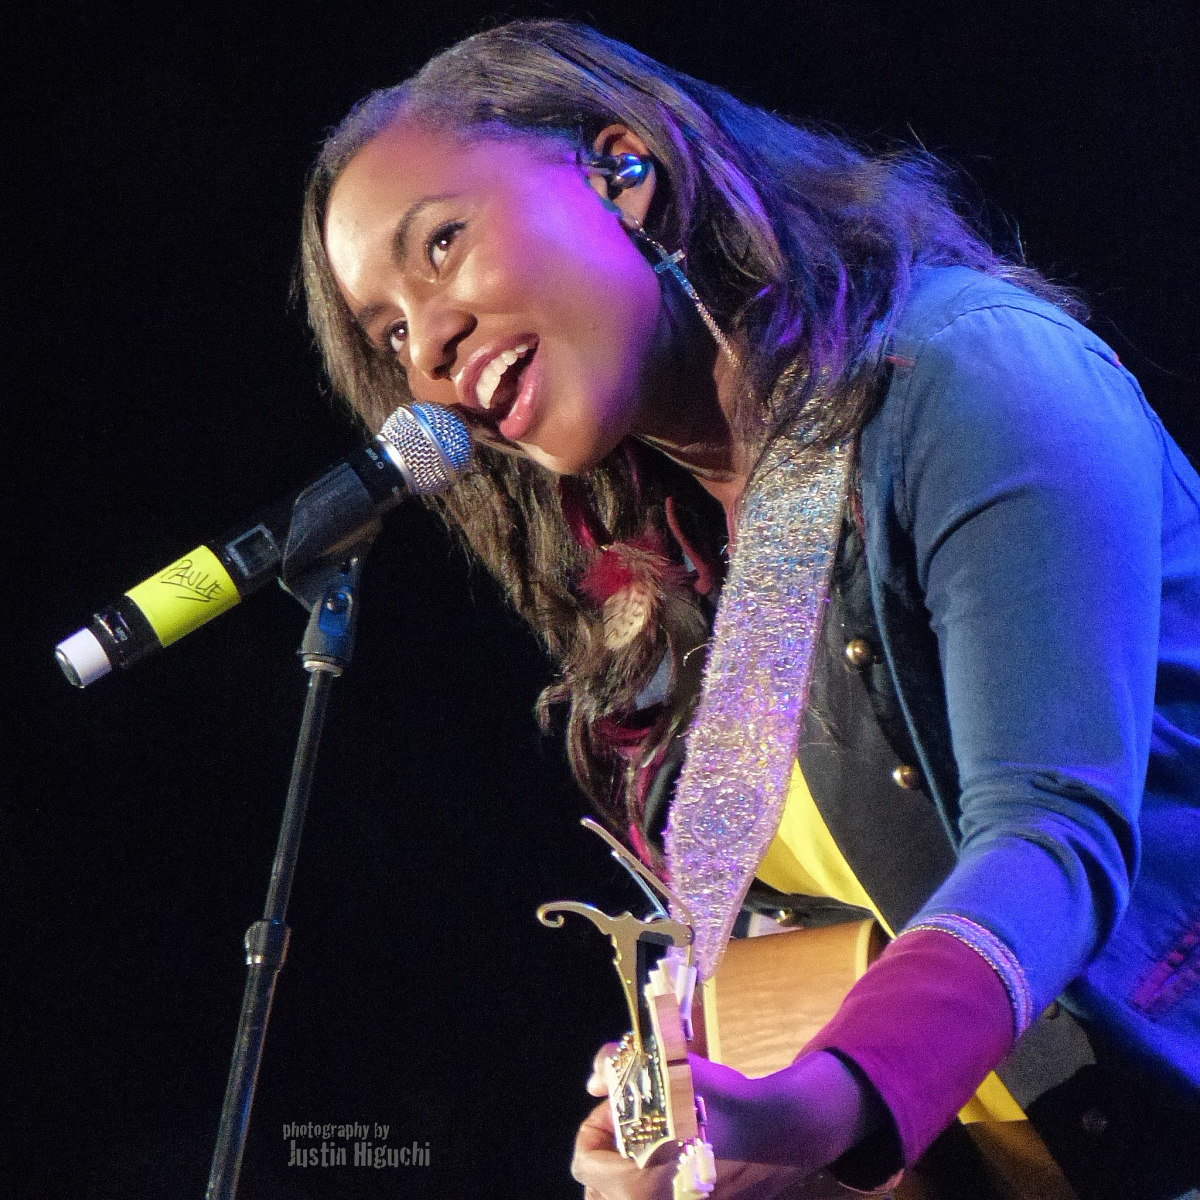 Jamie Grace performs as part of The Road Show in Anaheim, California.